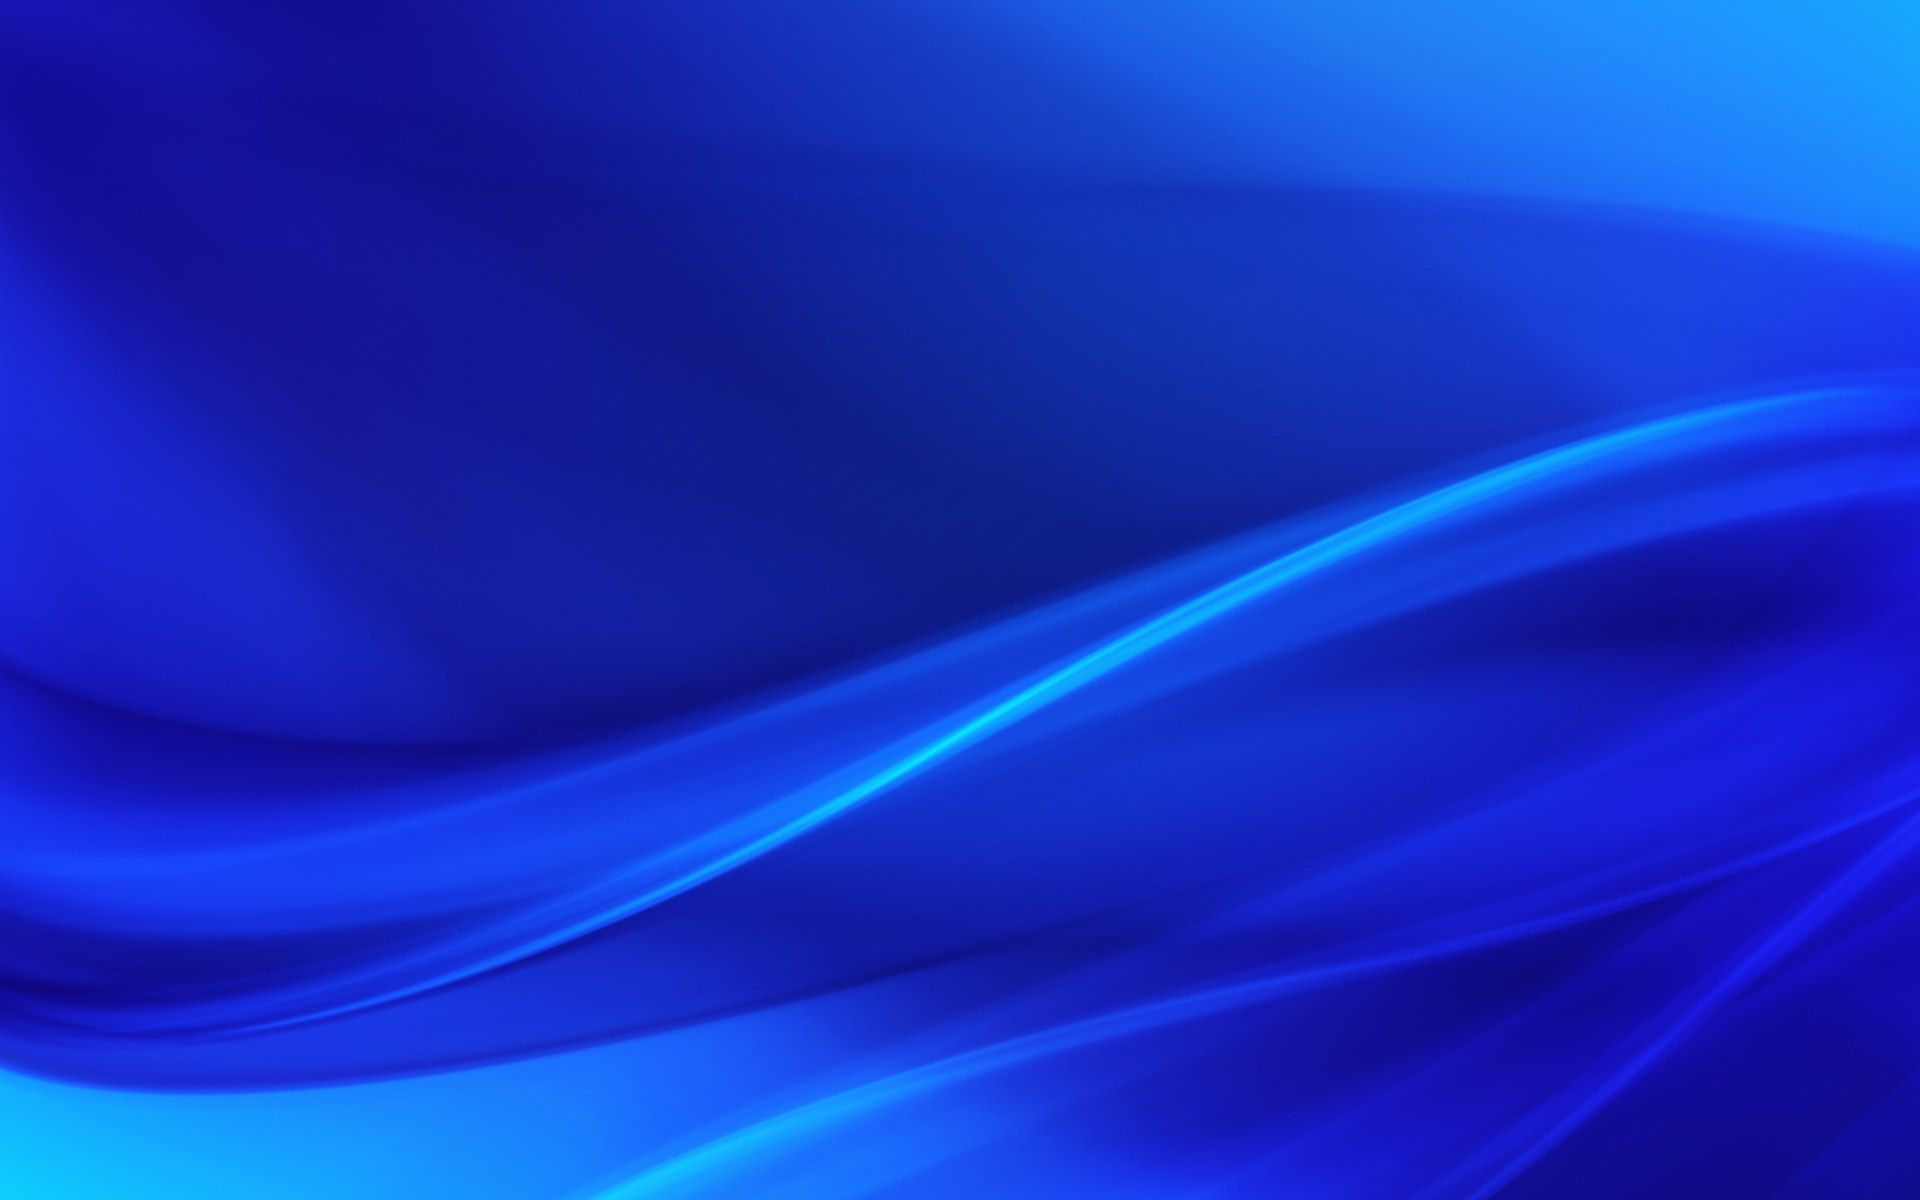 HD Wallpapers Abstract Blue backgrounds 34 | Backgrounds, Wallpapers in 2019